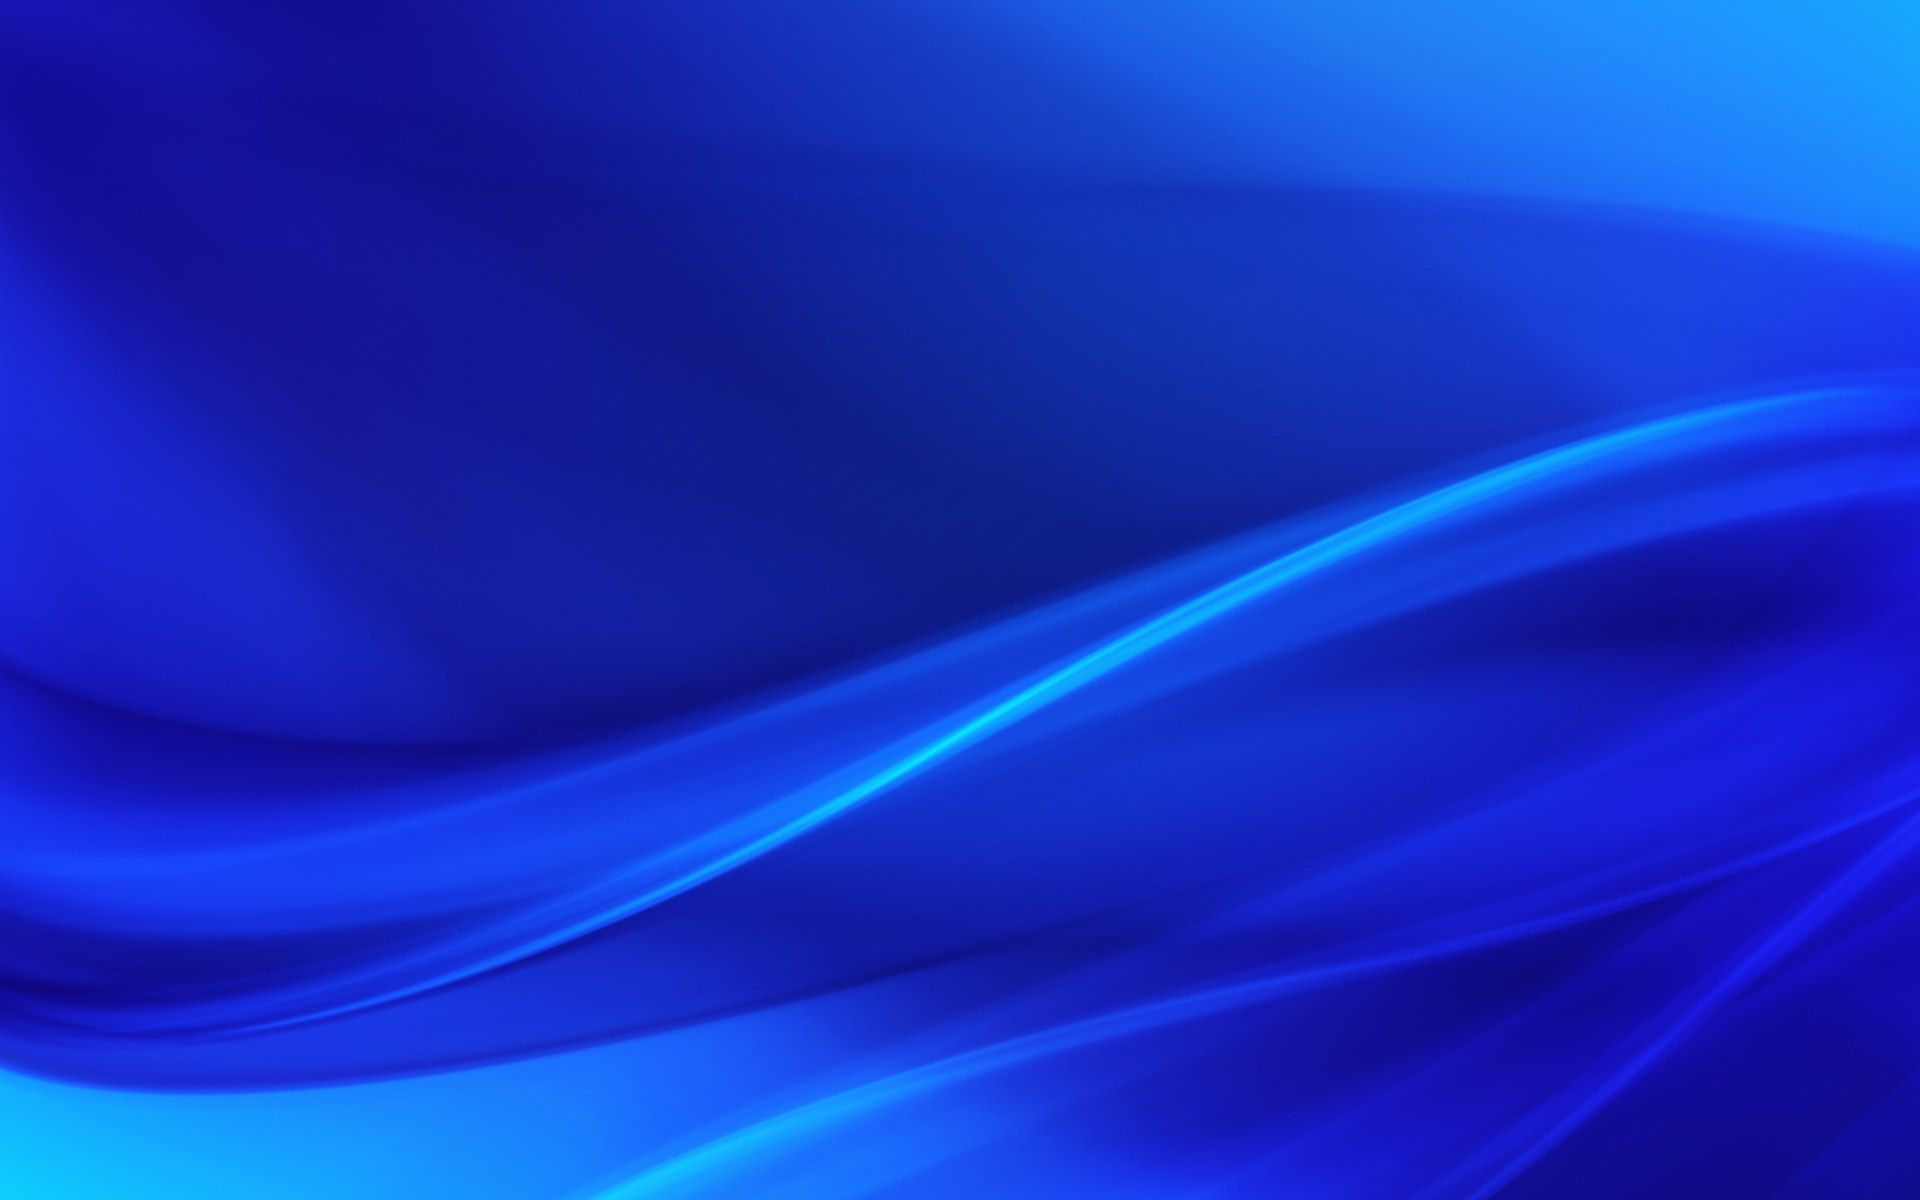 HD Wallpapers Abstract Blue backgrounds 34 | Backgrounds, Wallpapers in 2019